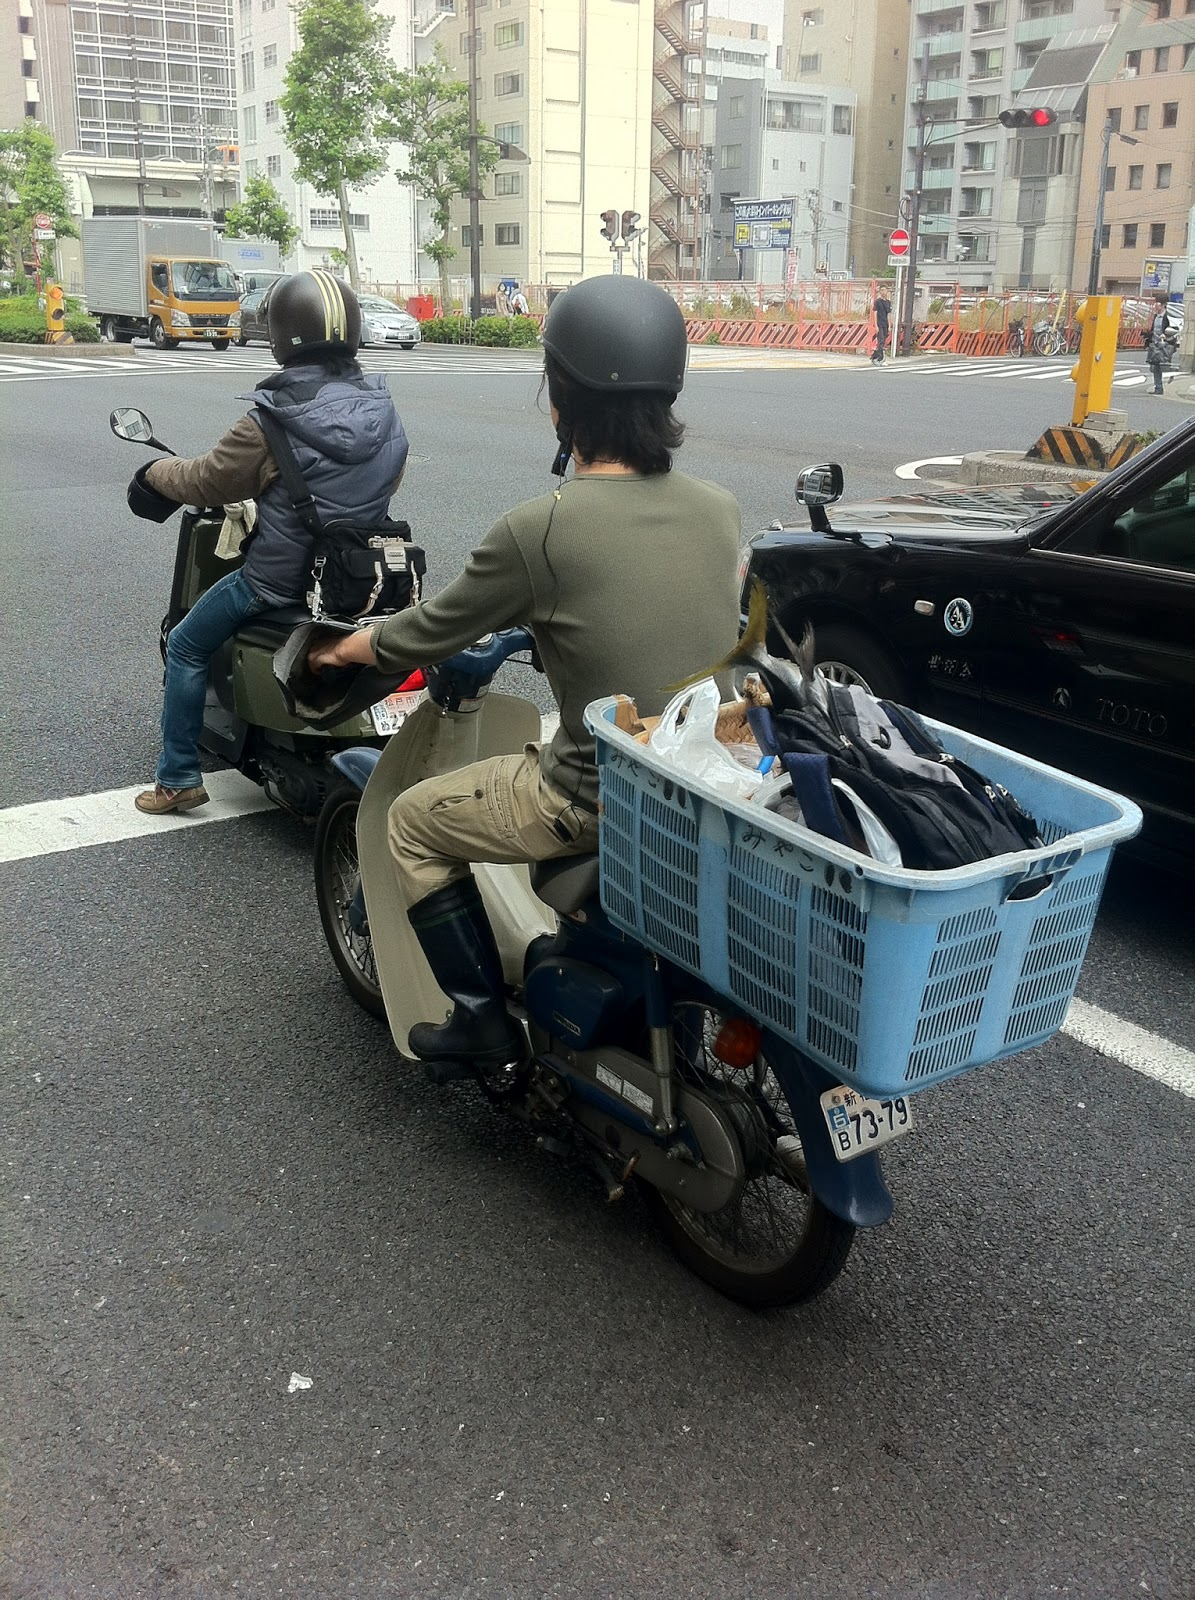 A motorscooter transporting fish on the streets of Tokyo.